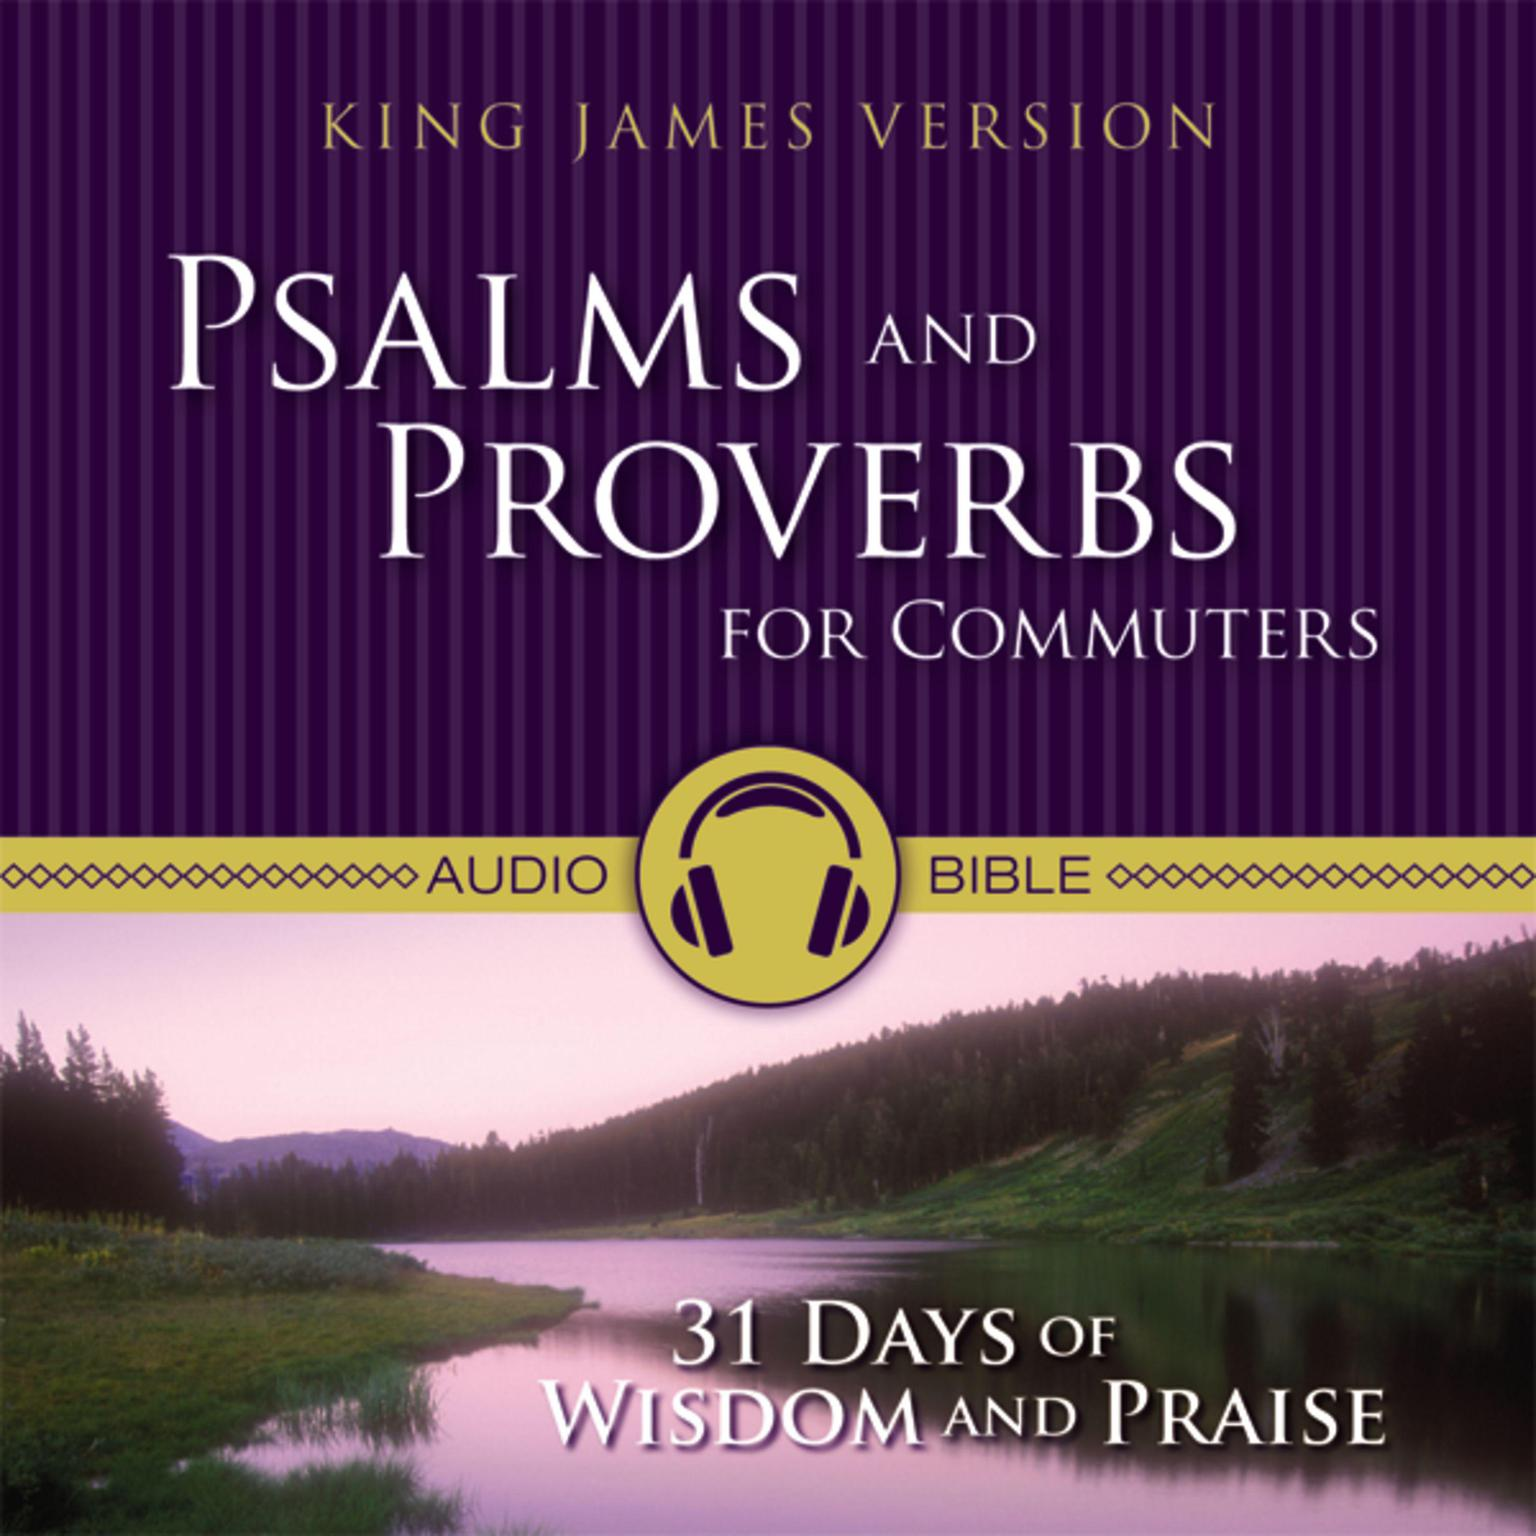 Printable KJV, Psalms and Proverbs for Commuters, Audio Download: 31 Days of Praise and Wisdom from the King James Version Bible Audiobook Cover Art